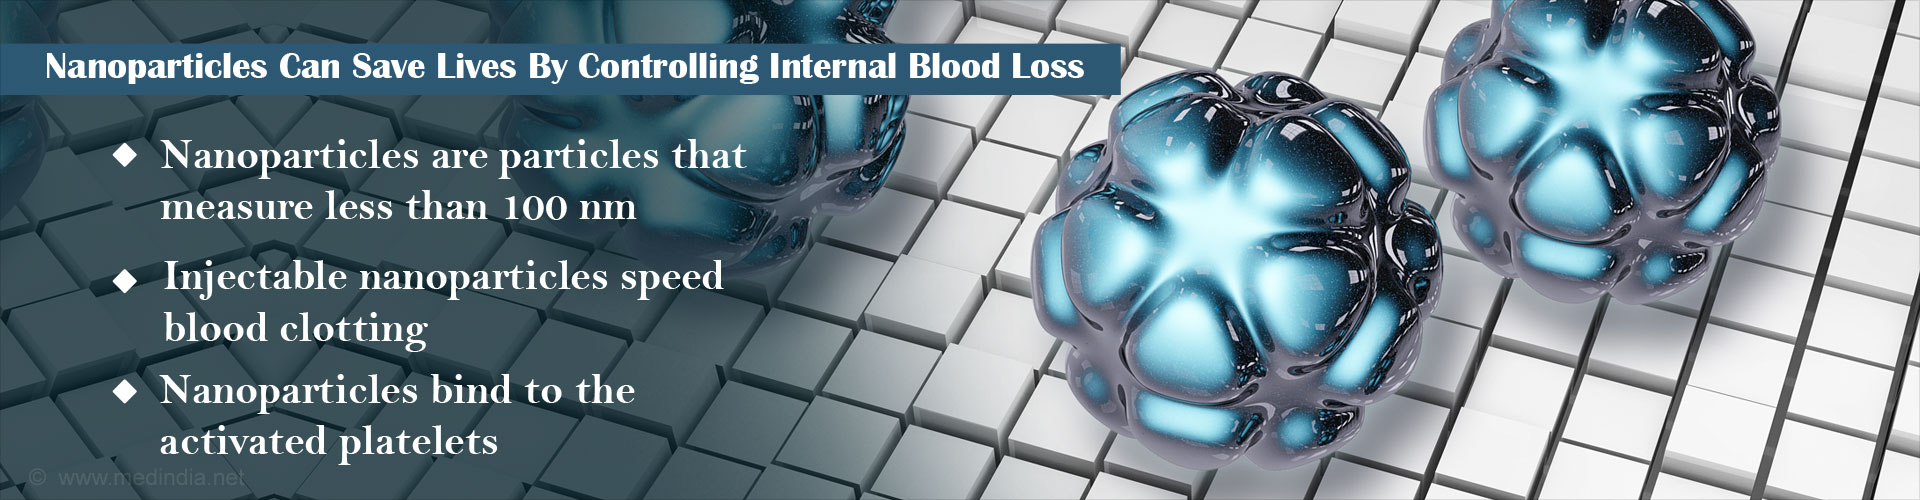 Nanoparticles Can Save Lives By Controlling Serious Blood Loss